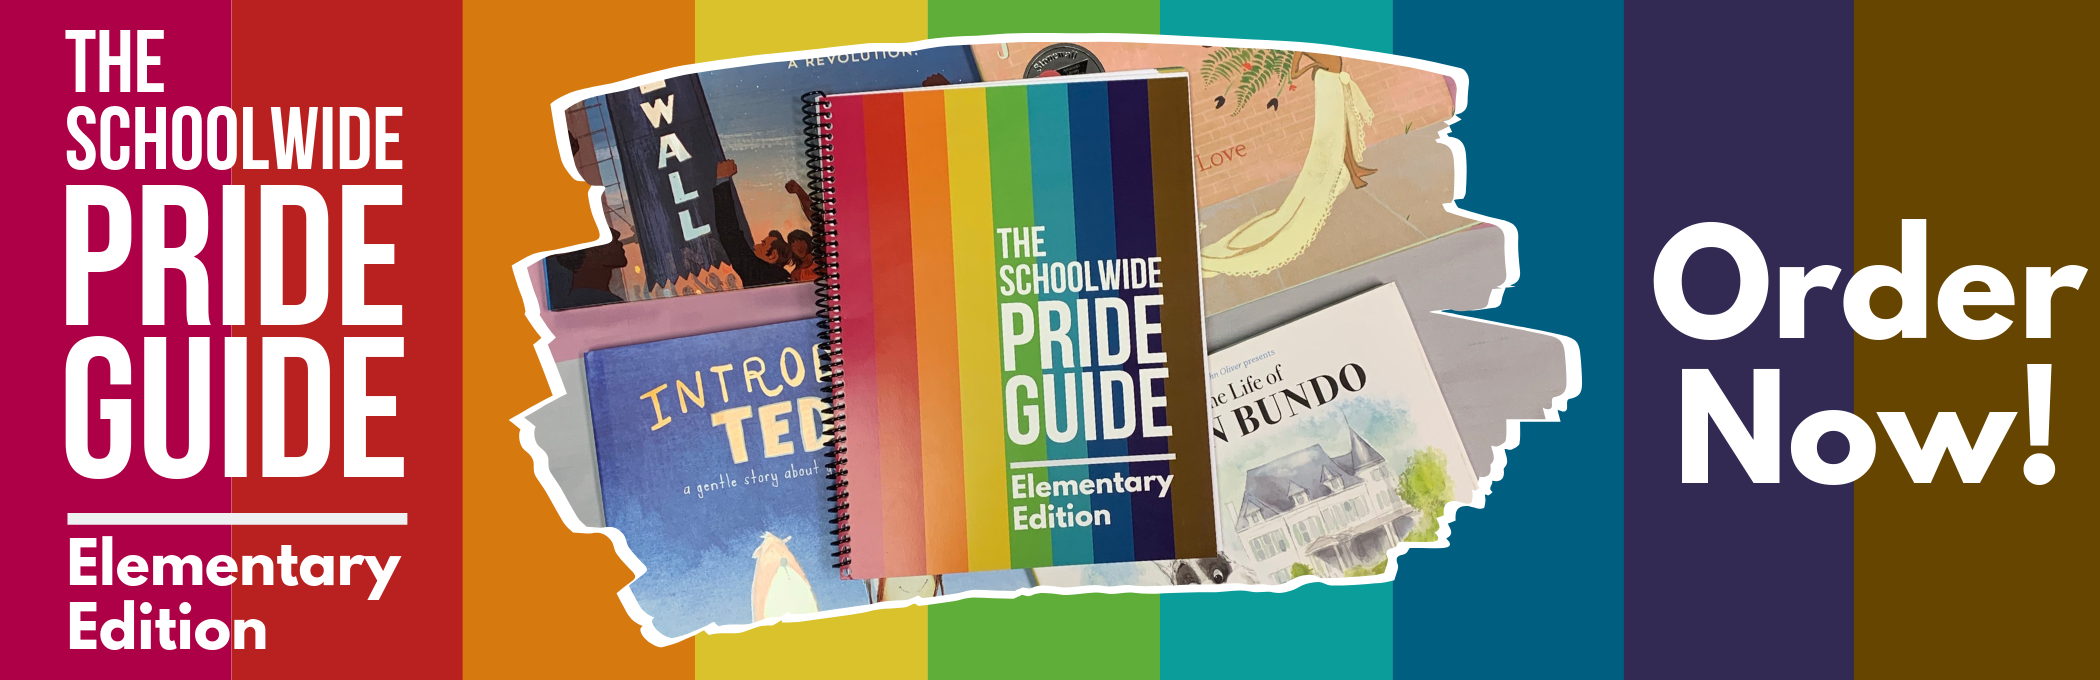 #SchoolwidePrideGuide - Order NOW by Clicking Here!